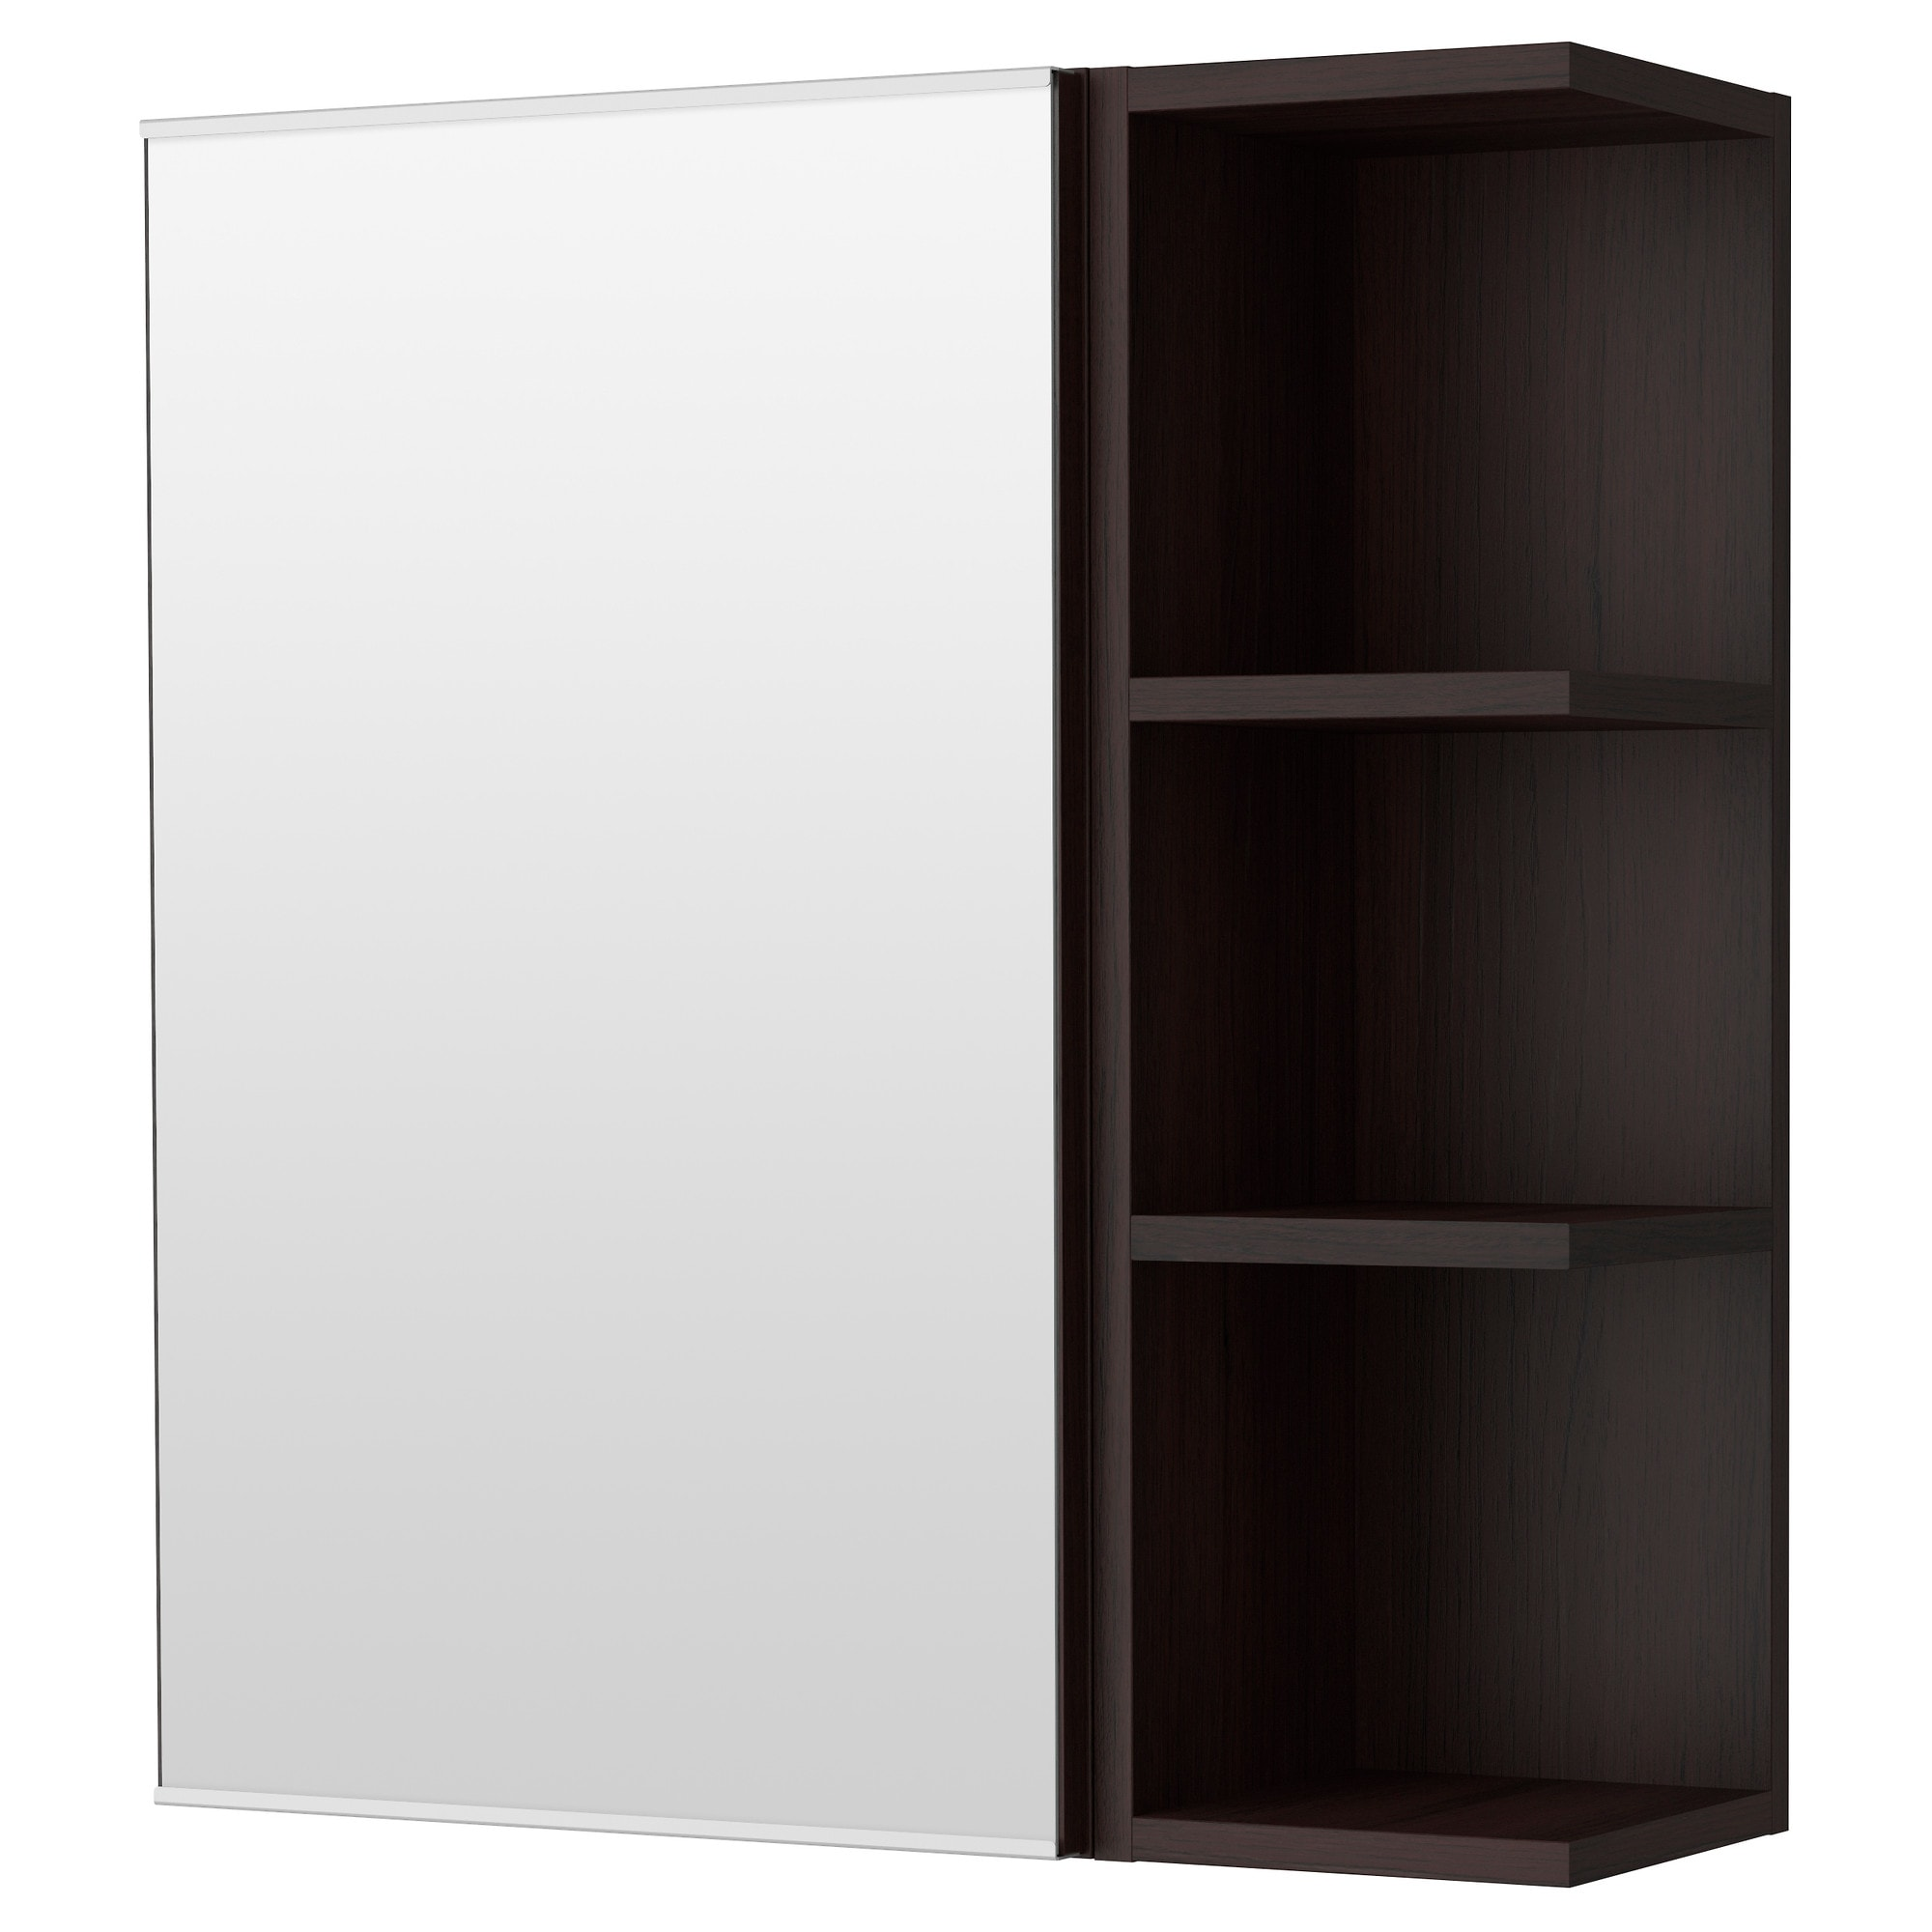 Lill Ngen Mirror Cabinet 1 Door 1 End Unit Black Brown 23 1 4x8 1 4x25 1 4 Ikea